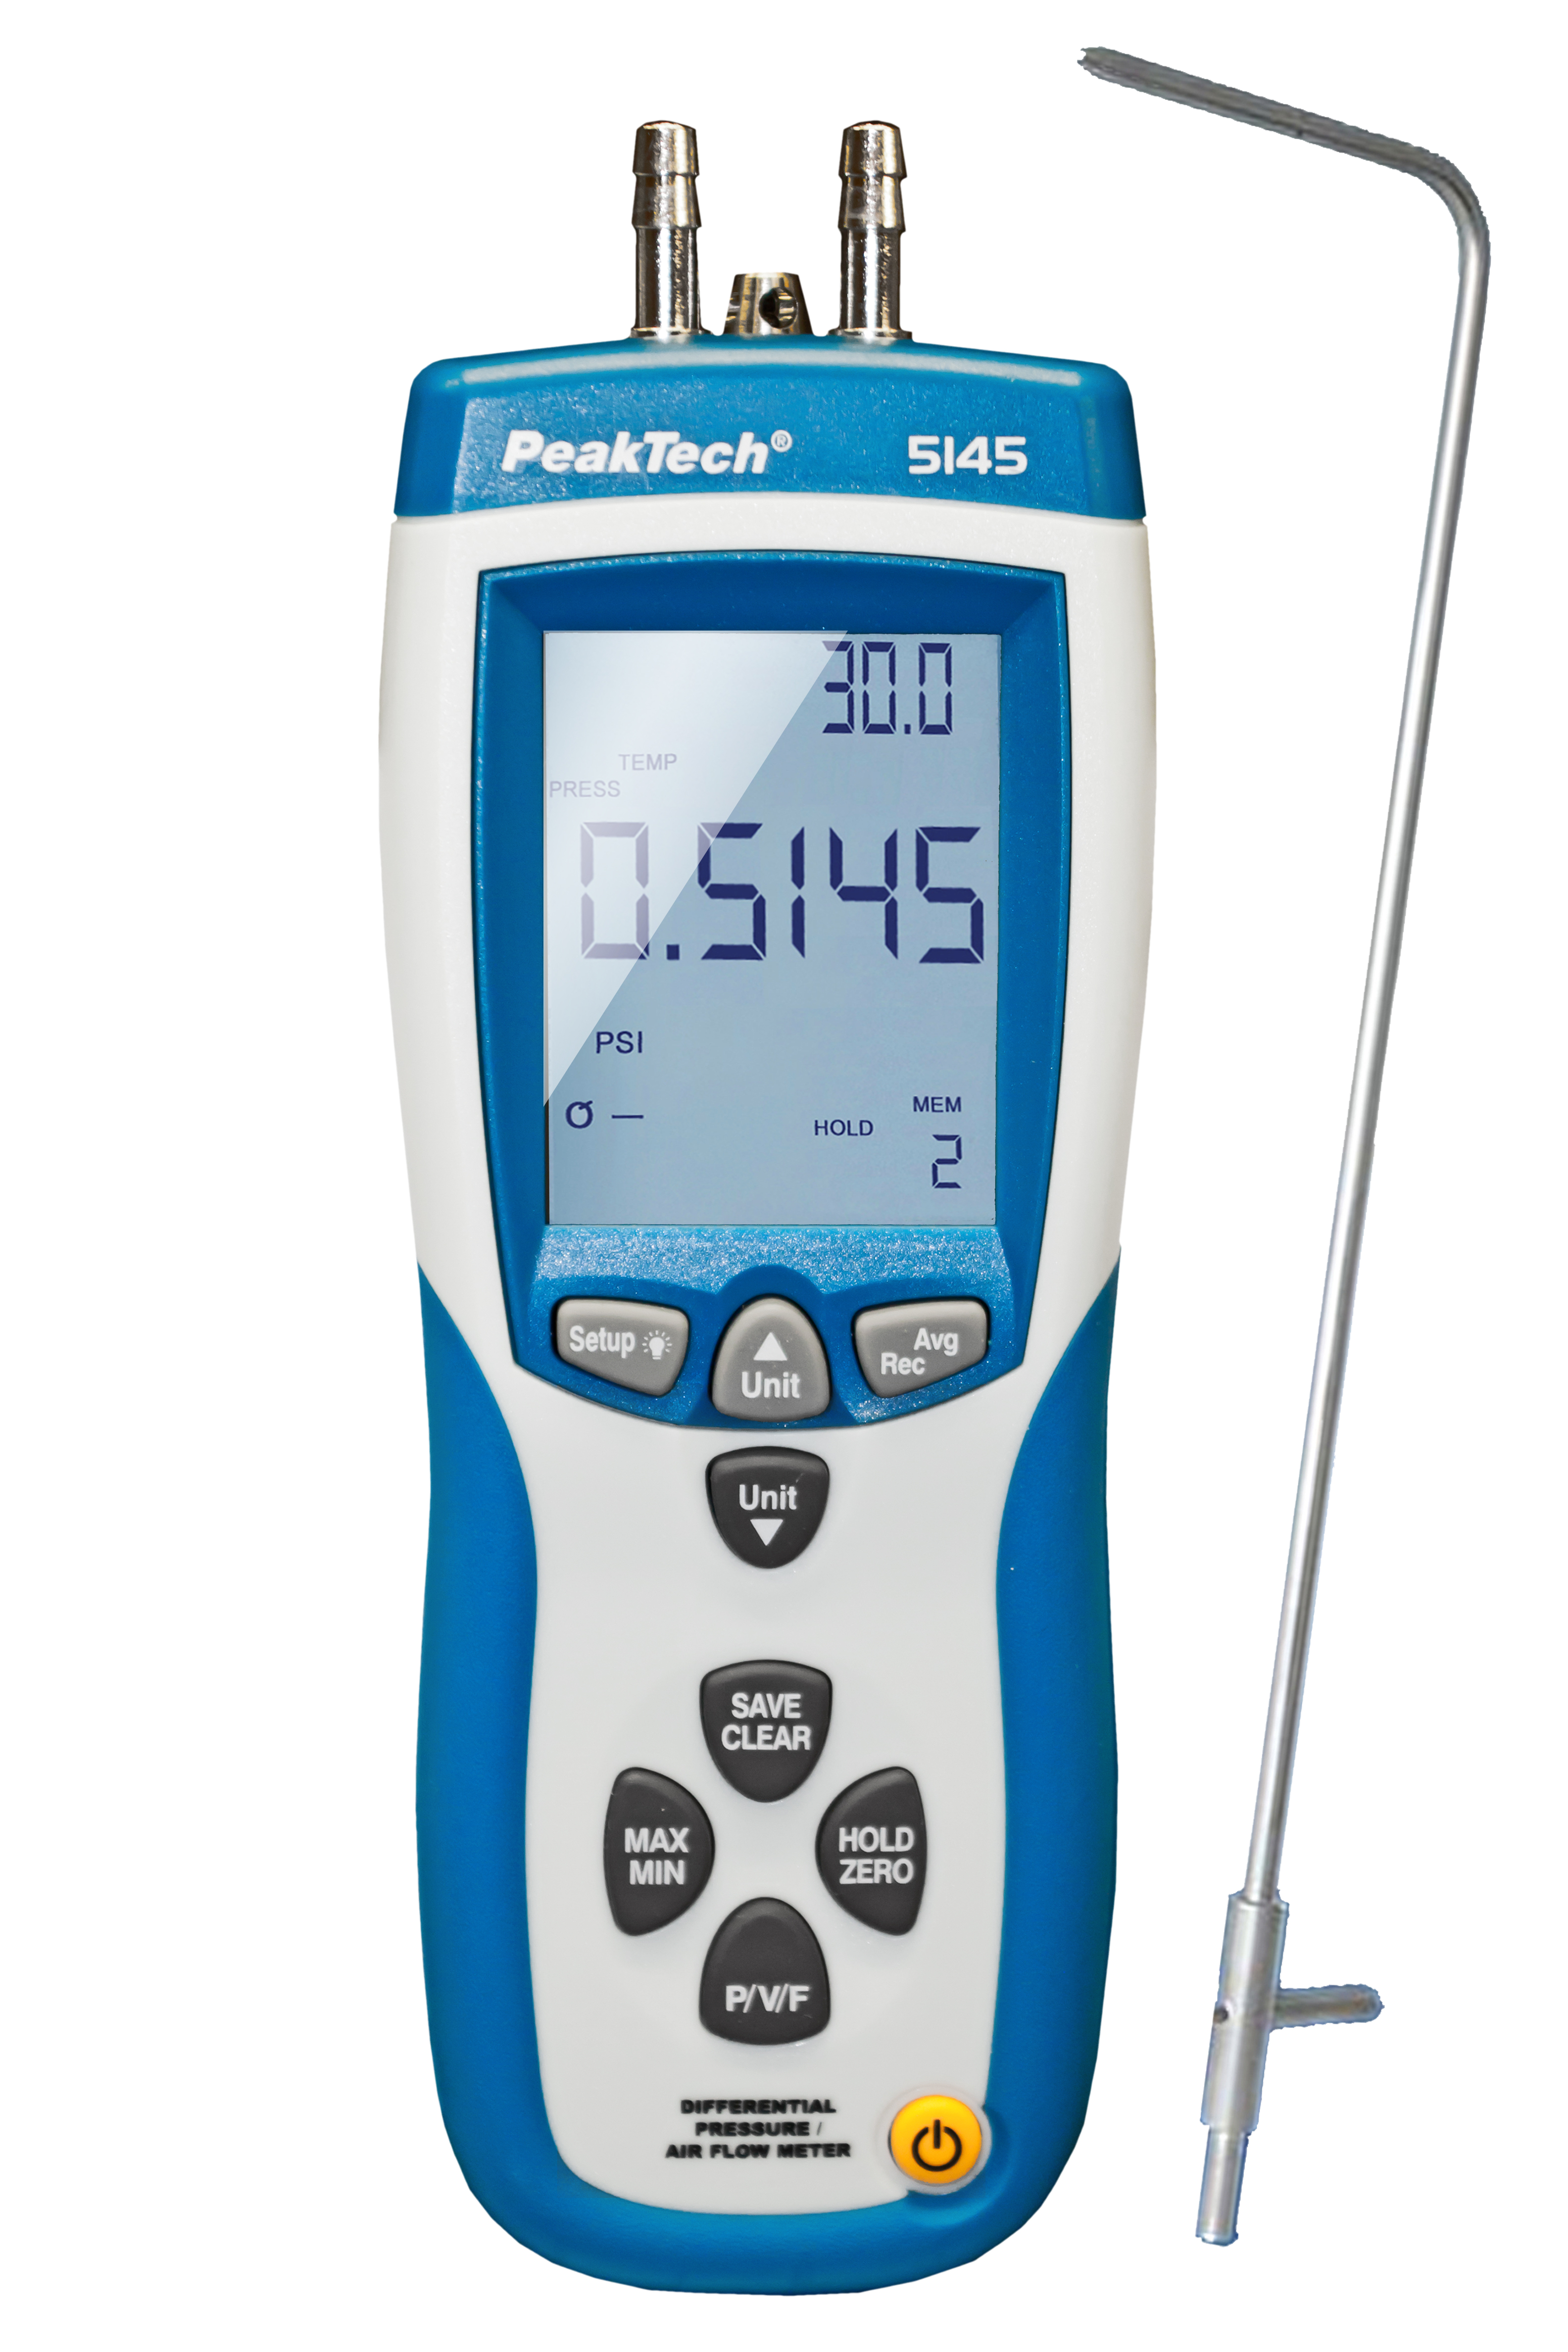 «PeakTech® P 5145» Professional Pressure-Difference & Air Flow Meter